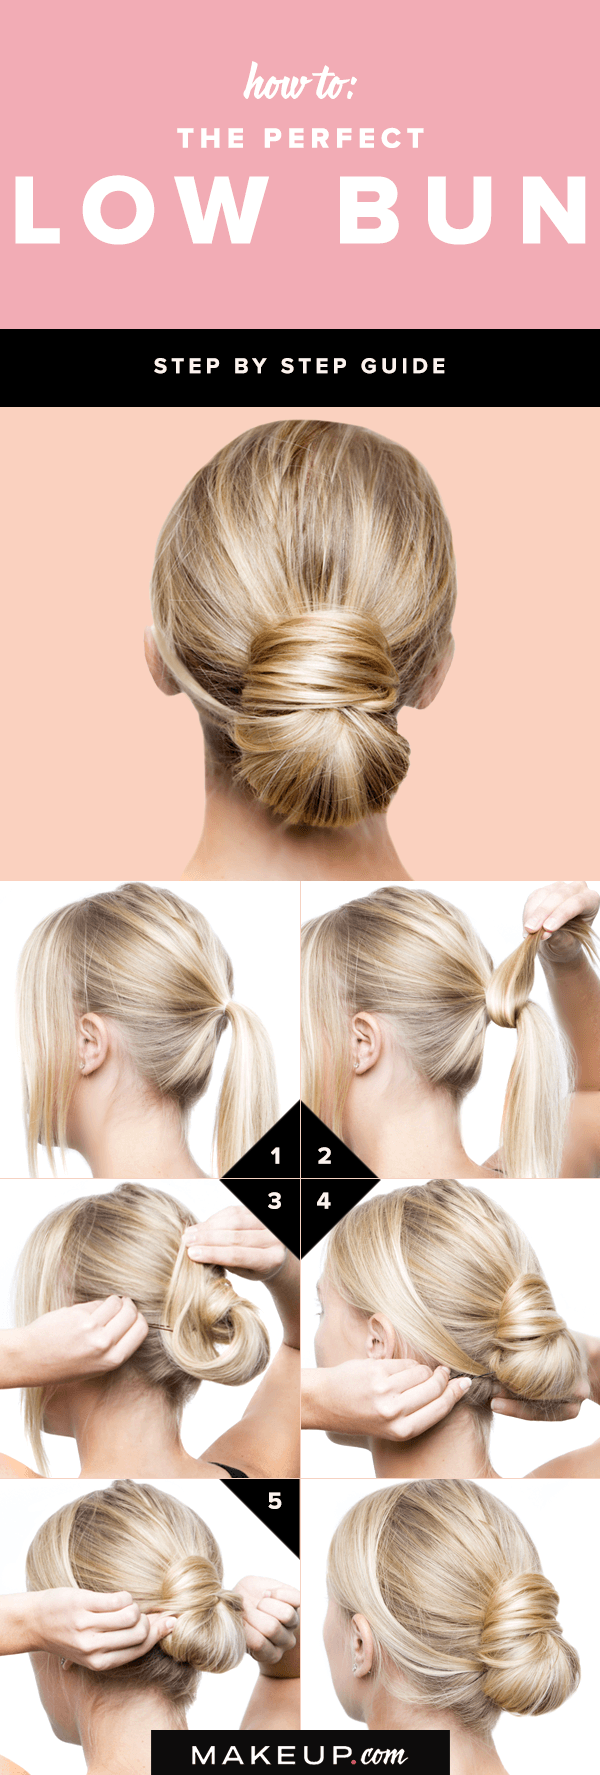 How To Get The Perfect Low Bun In 4 Easy Steps Hair